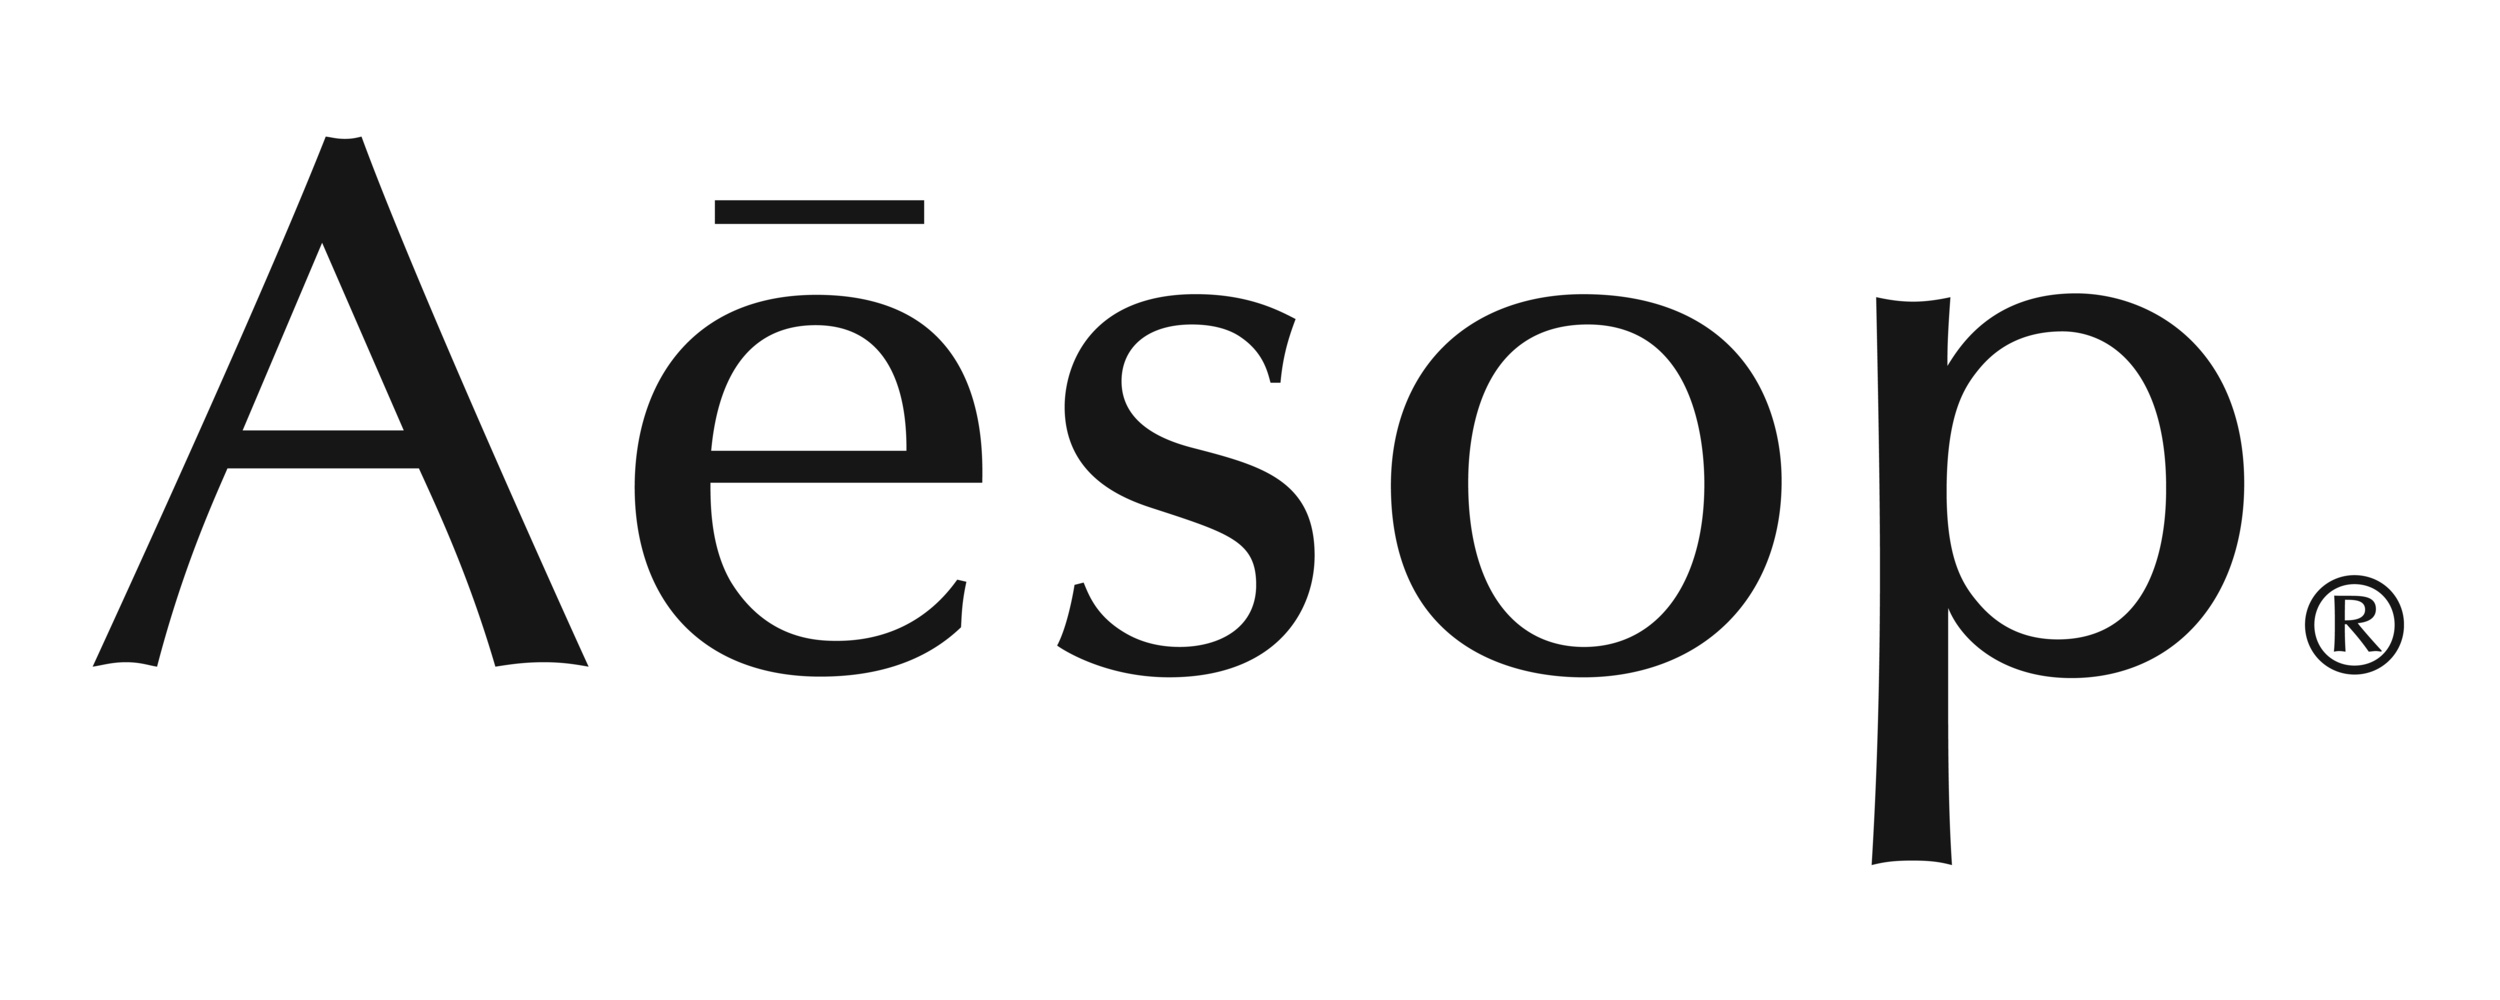 AESOP LOGO MASTER BASIC HIGH RES.jpg